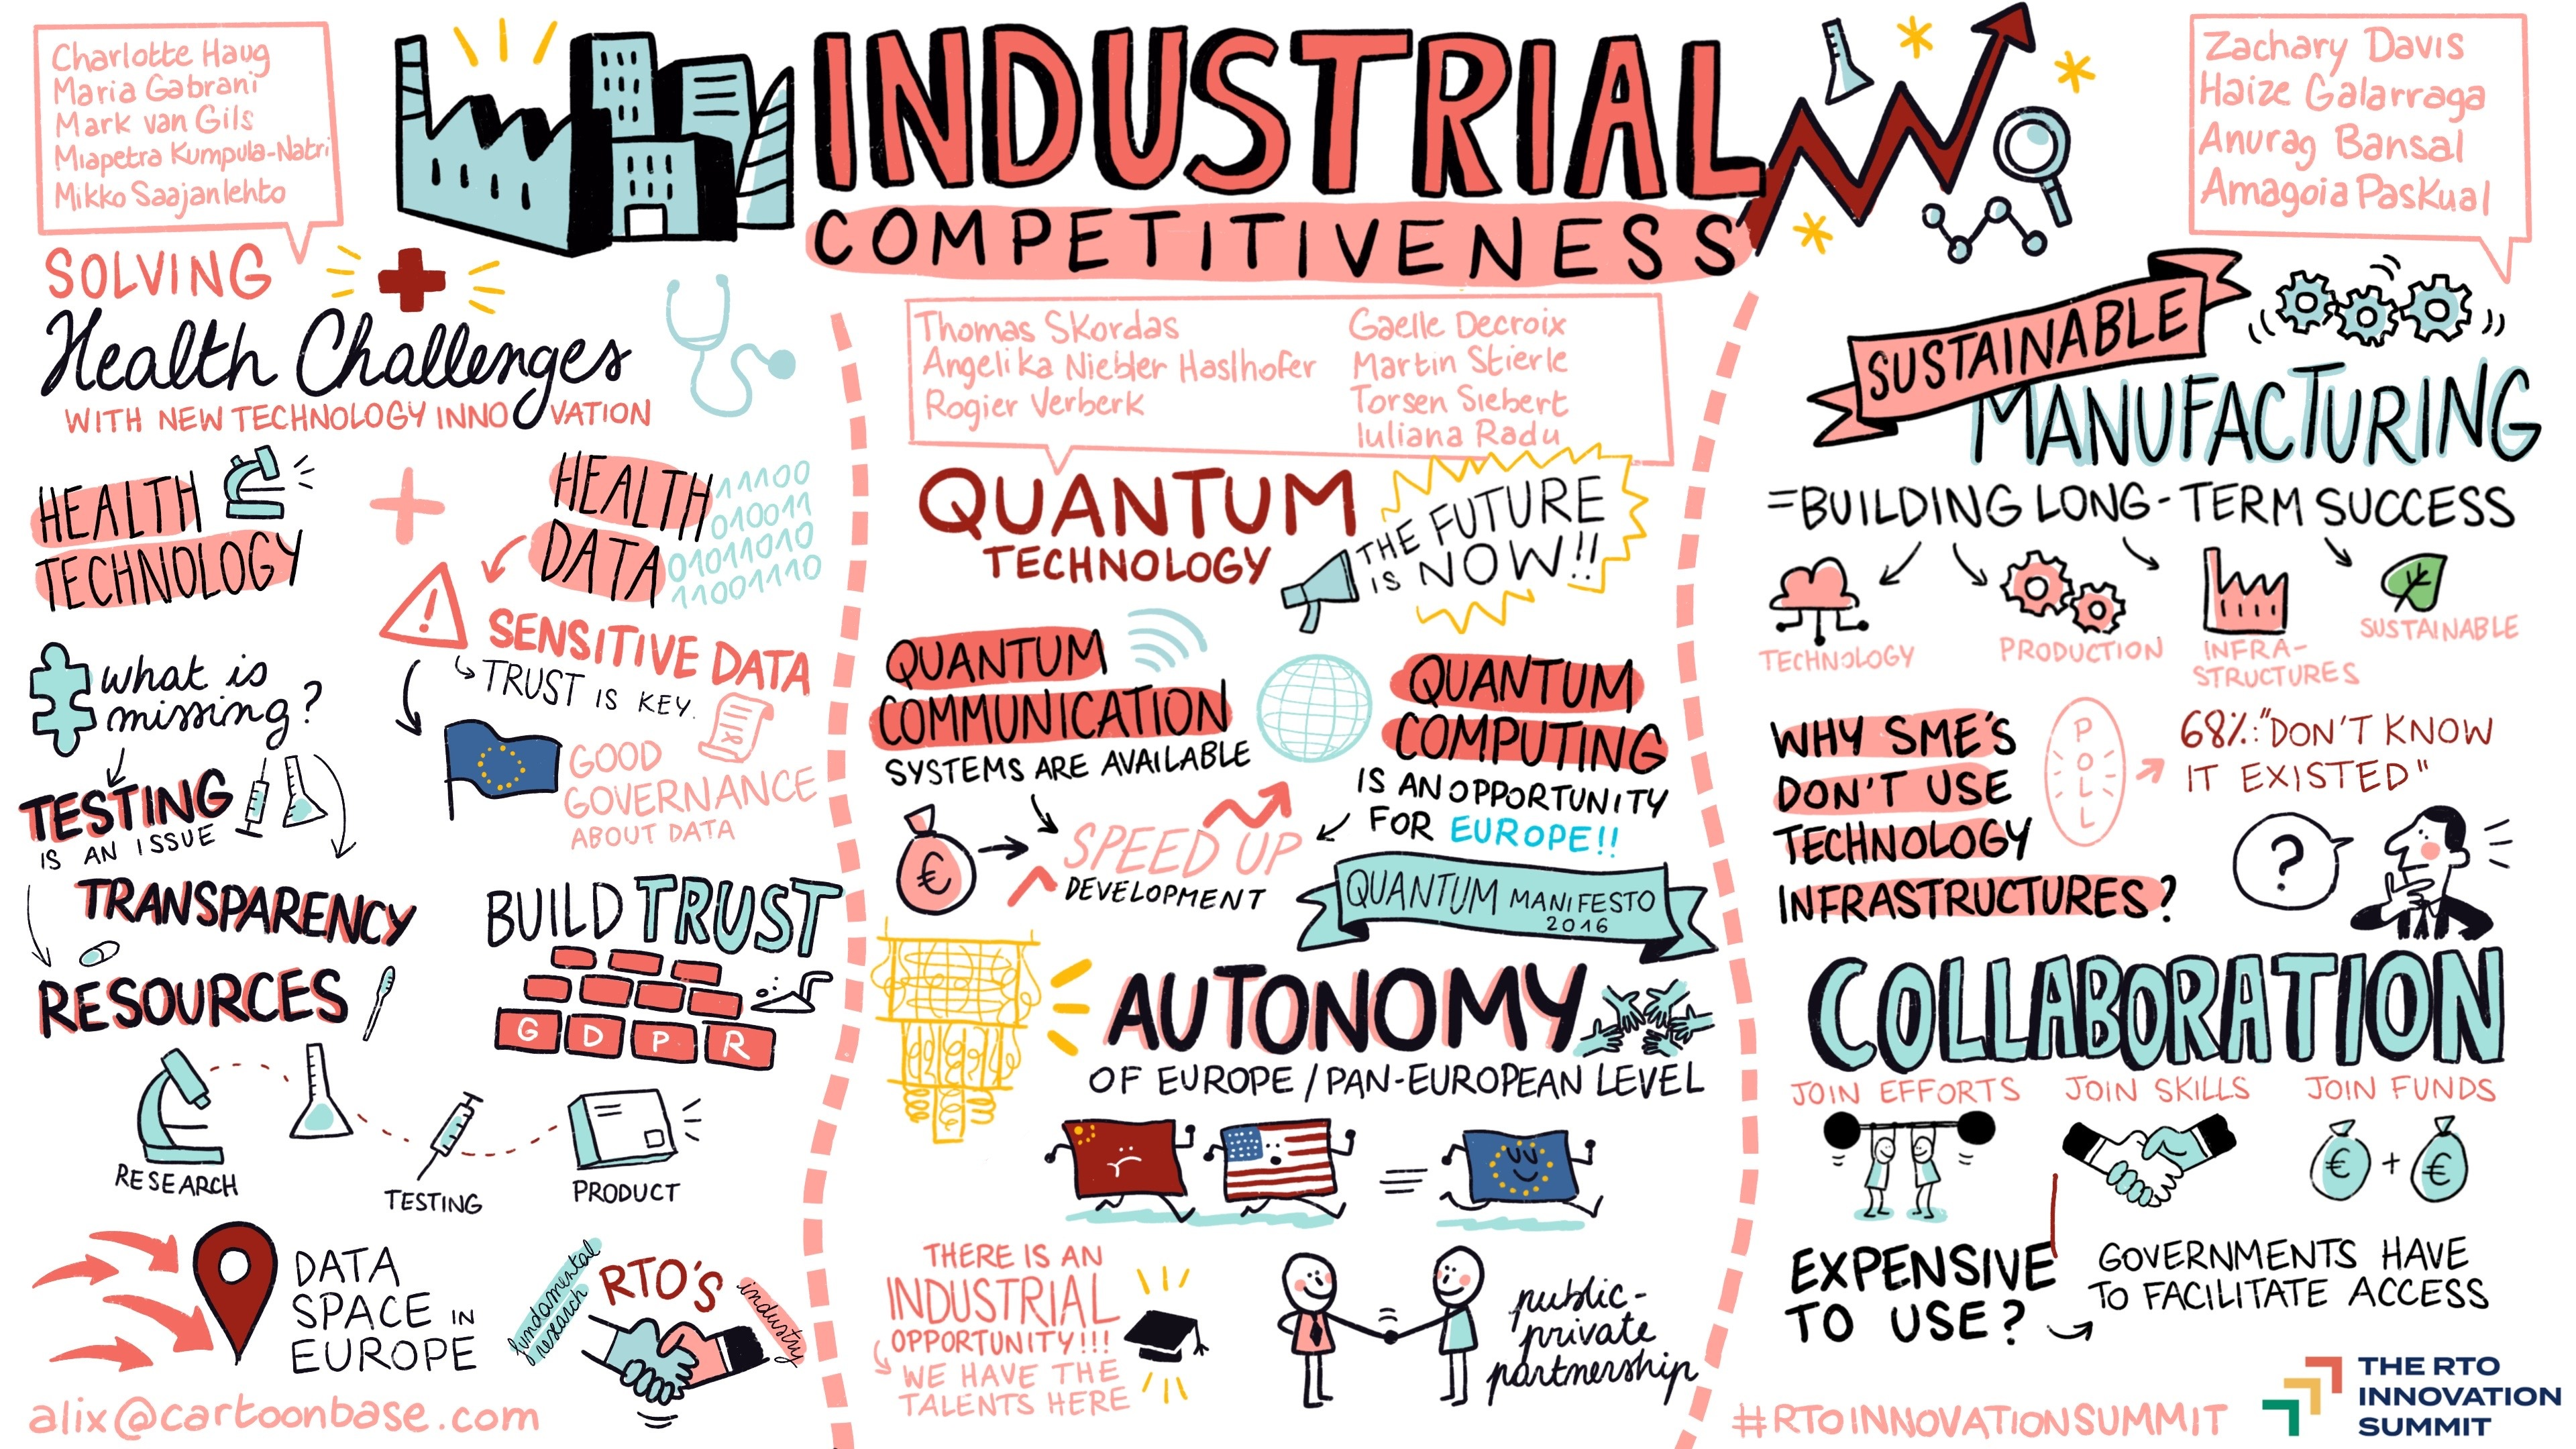 Industrial Competitiveness illustration